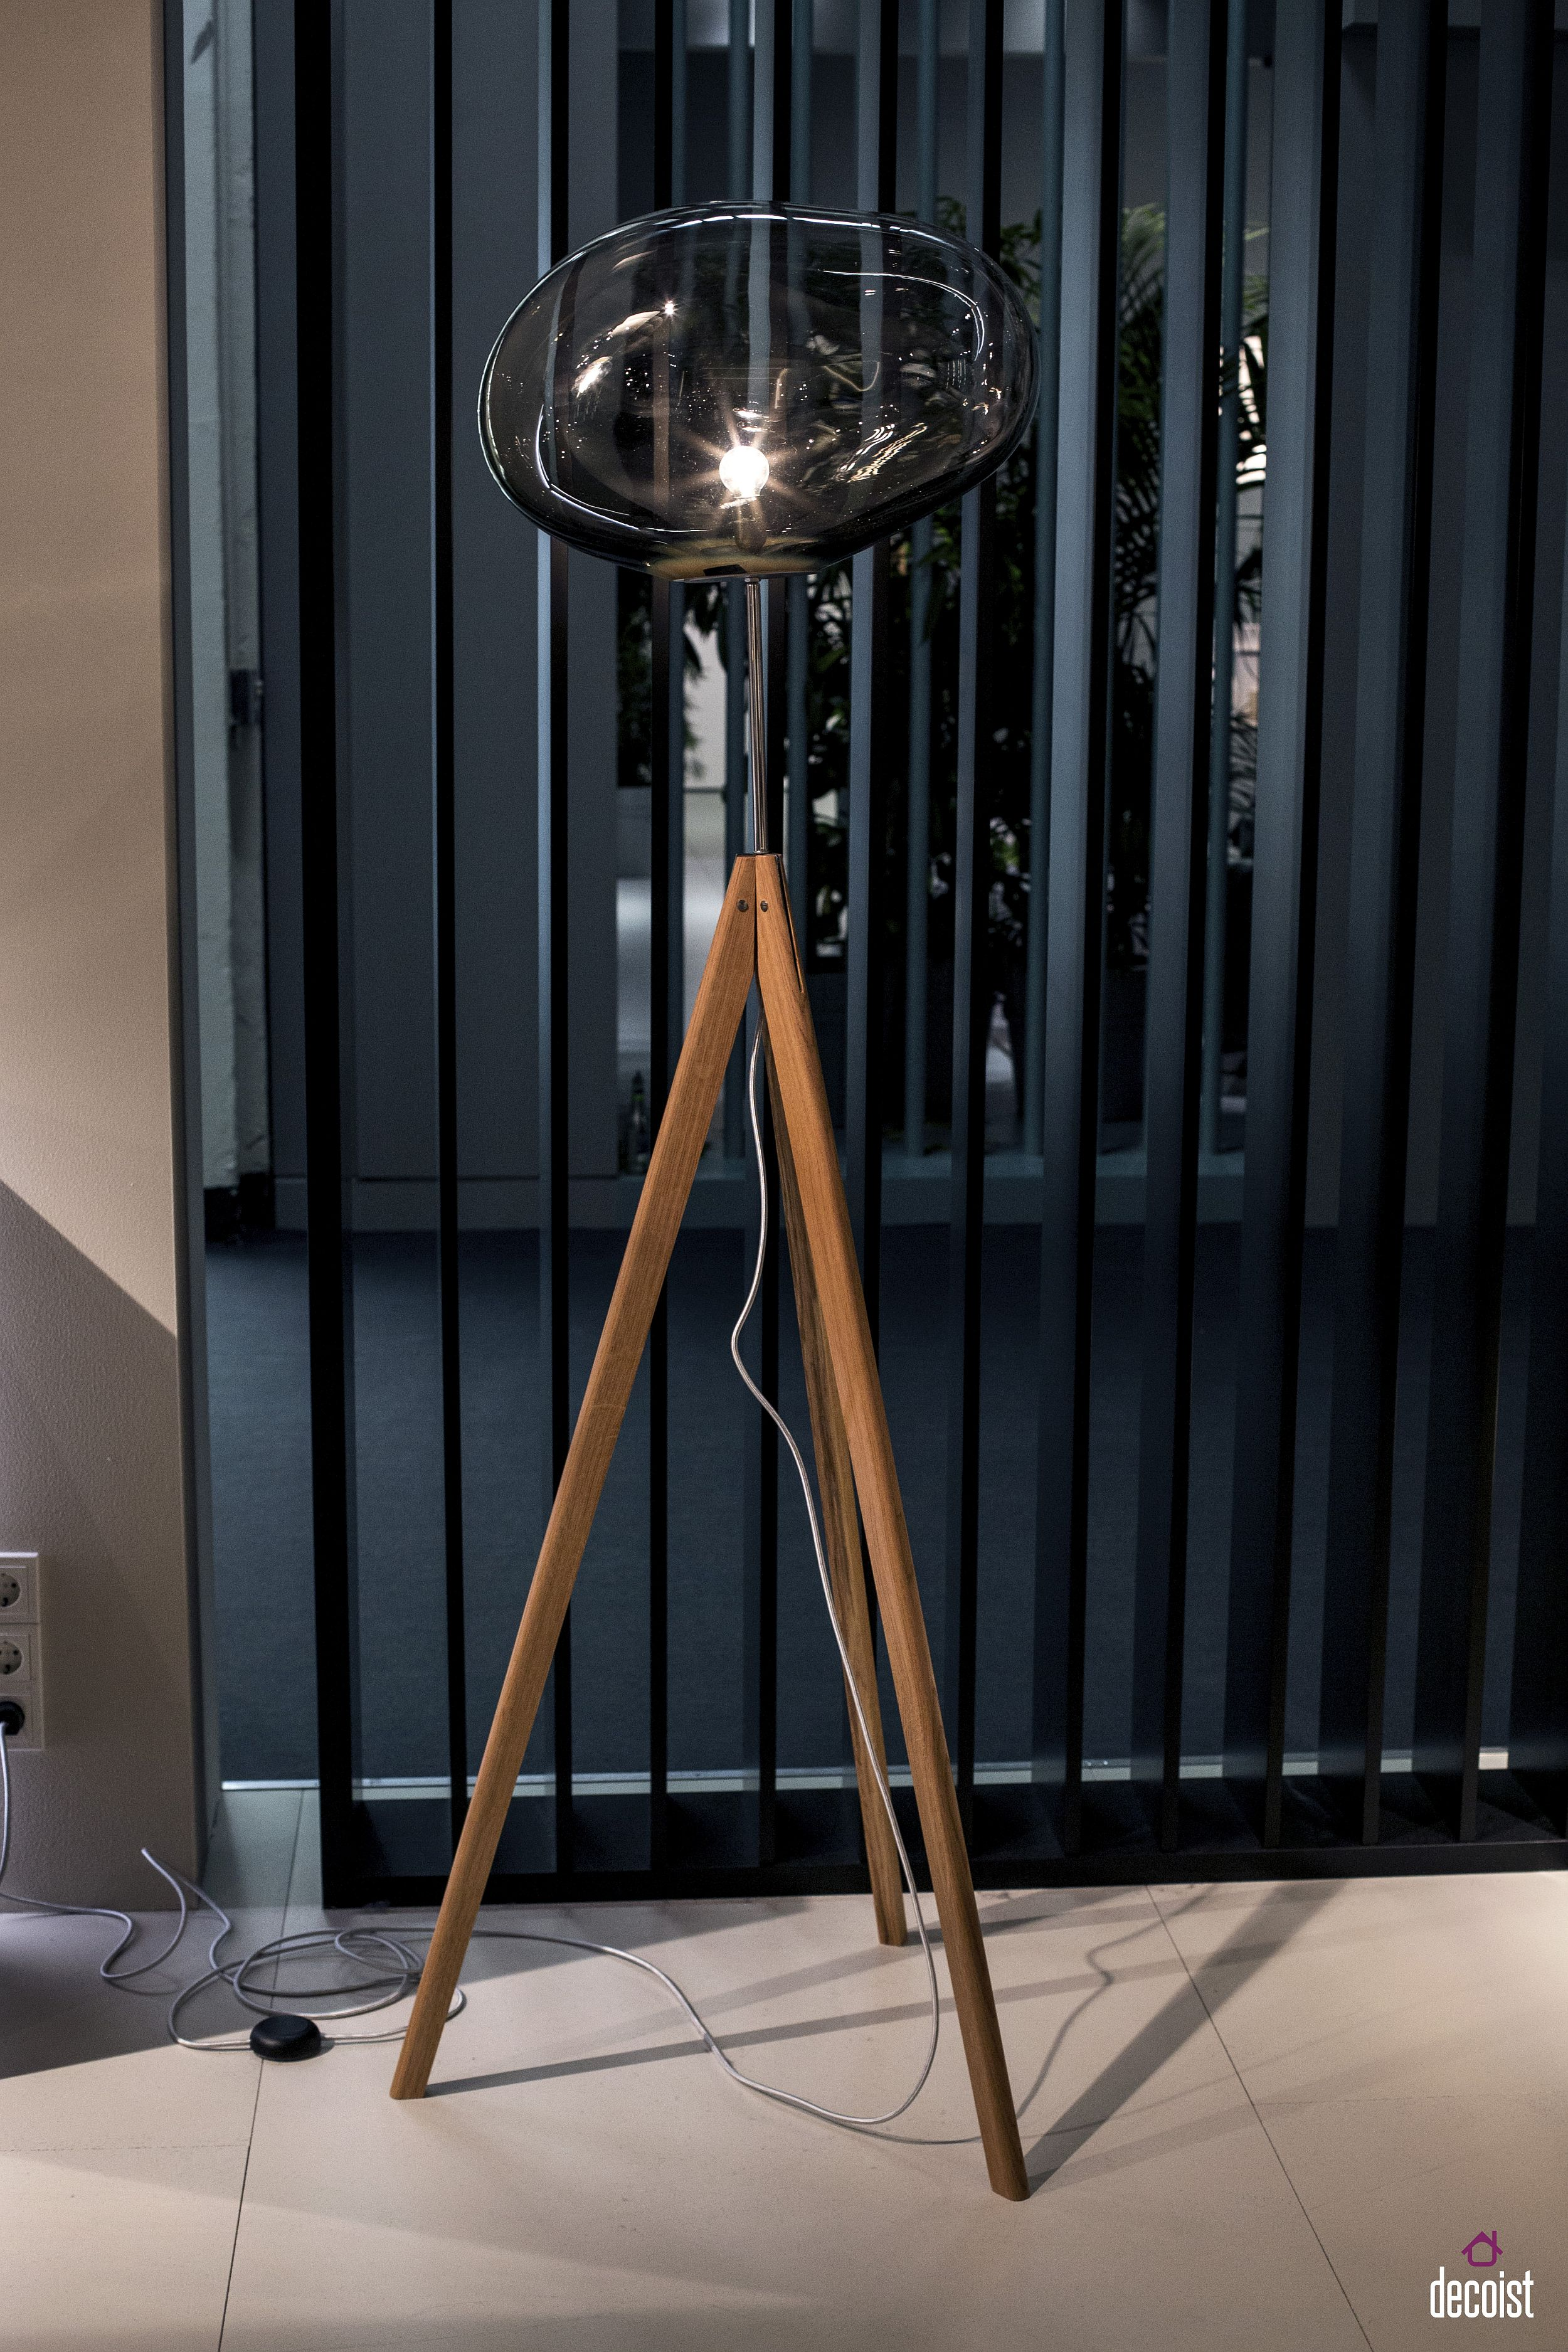 Tripod base and exquisite glass lamp make this floor light truly one of a kind